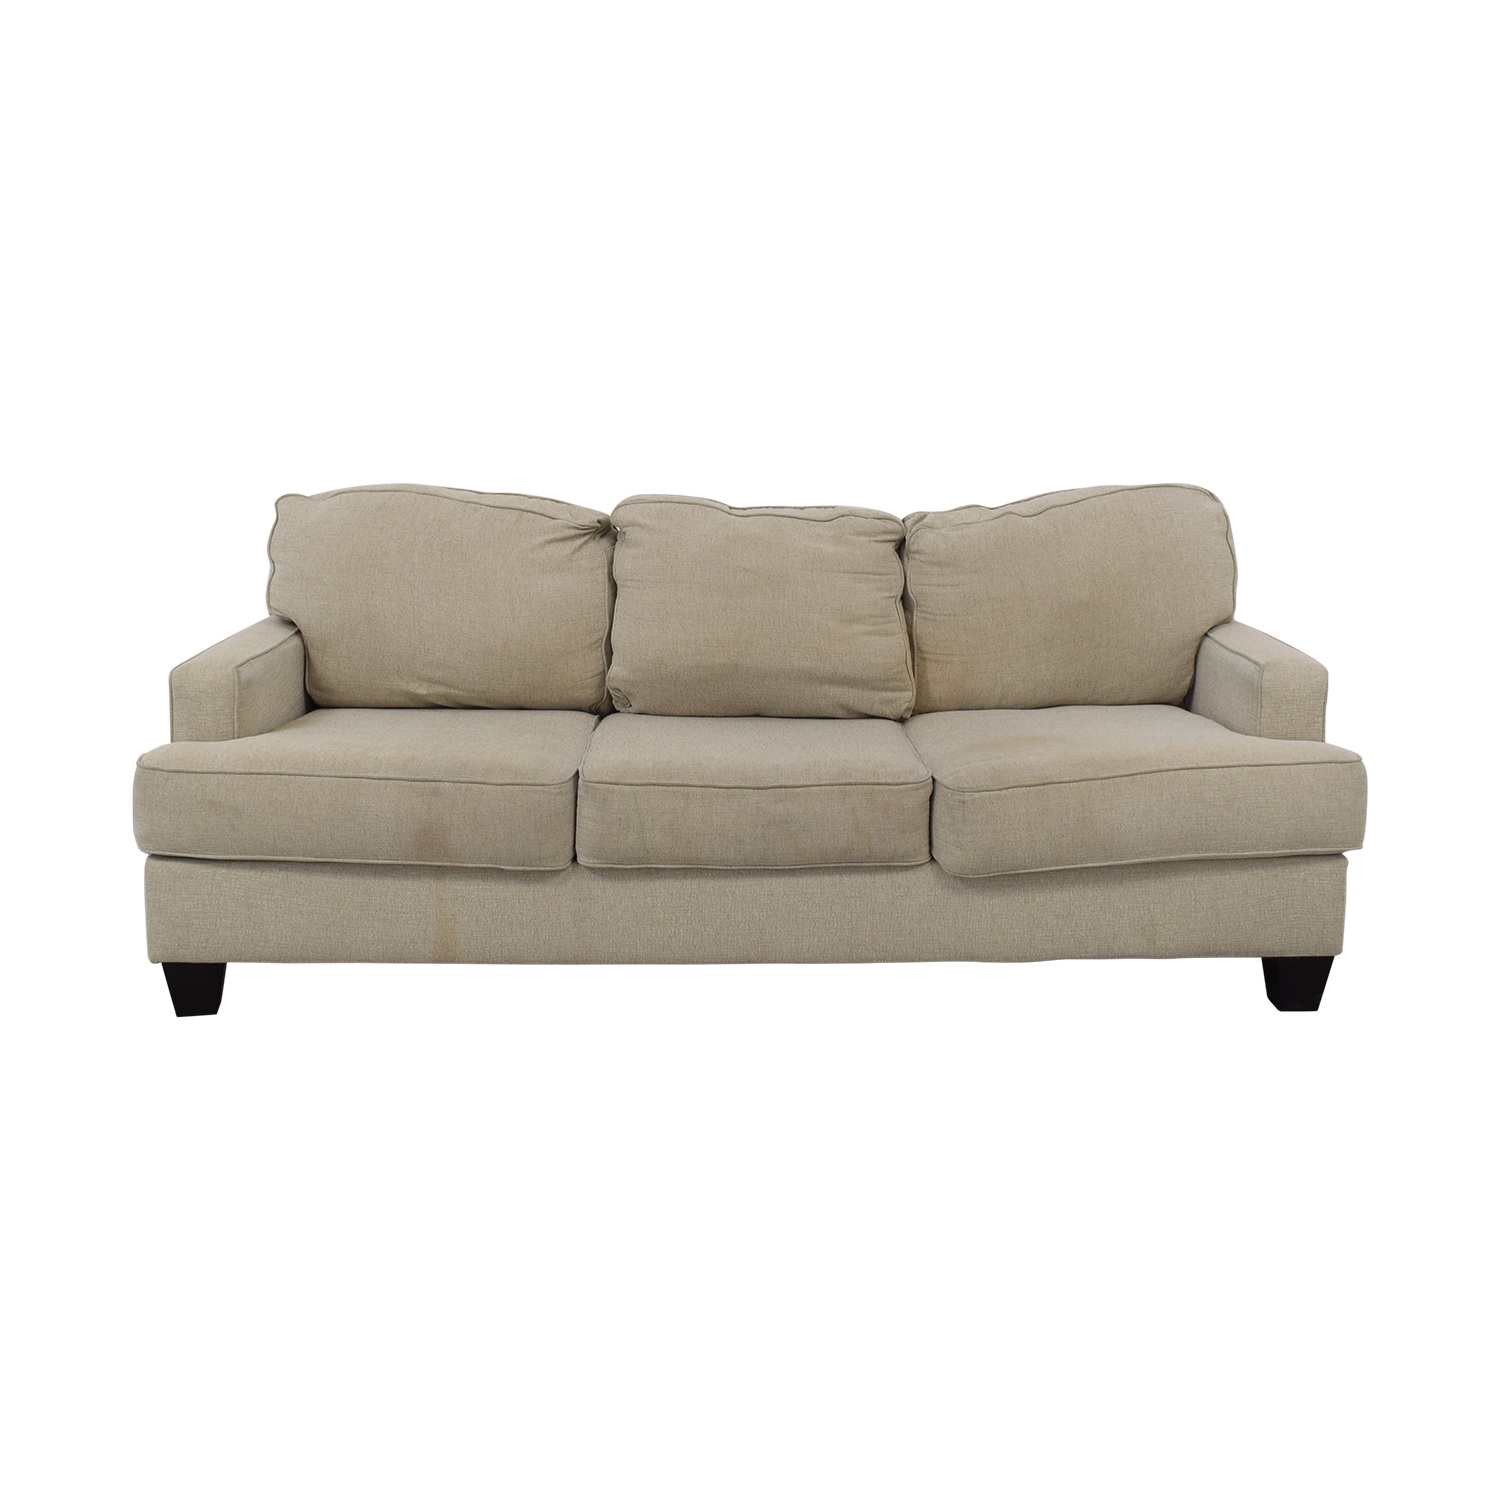 Ashley Furniture Ashley Furniture Sofa on sale